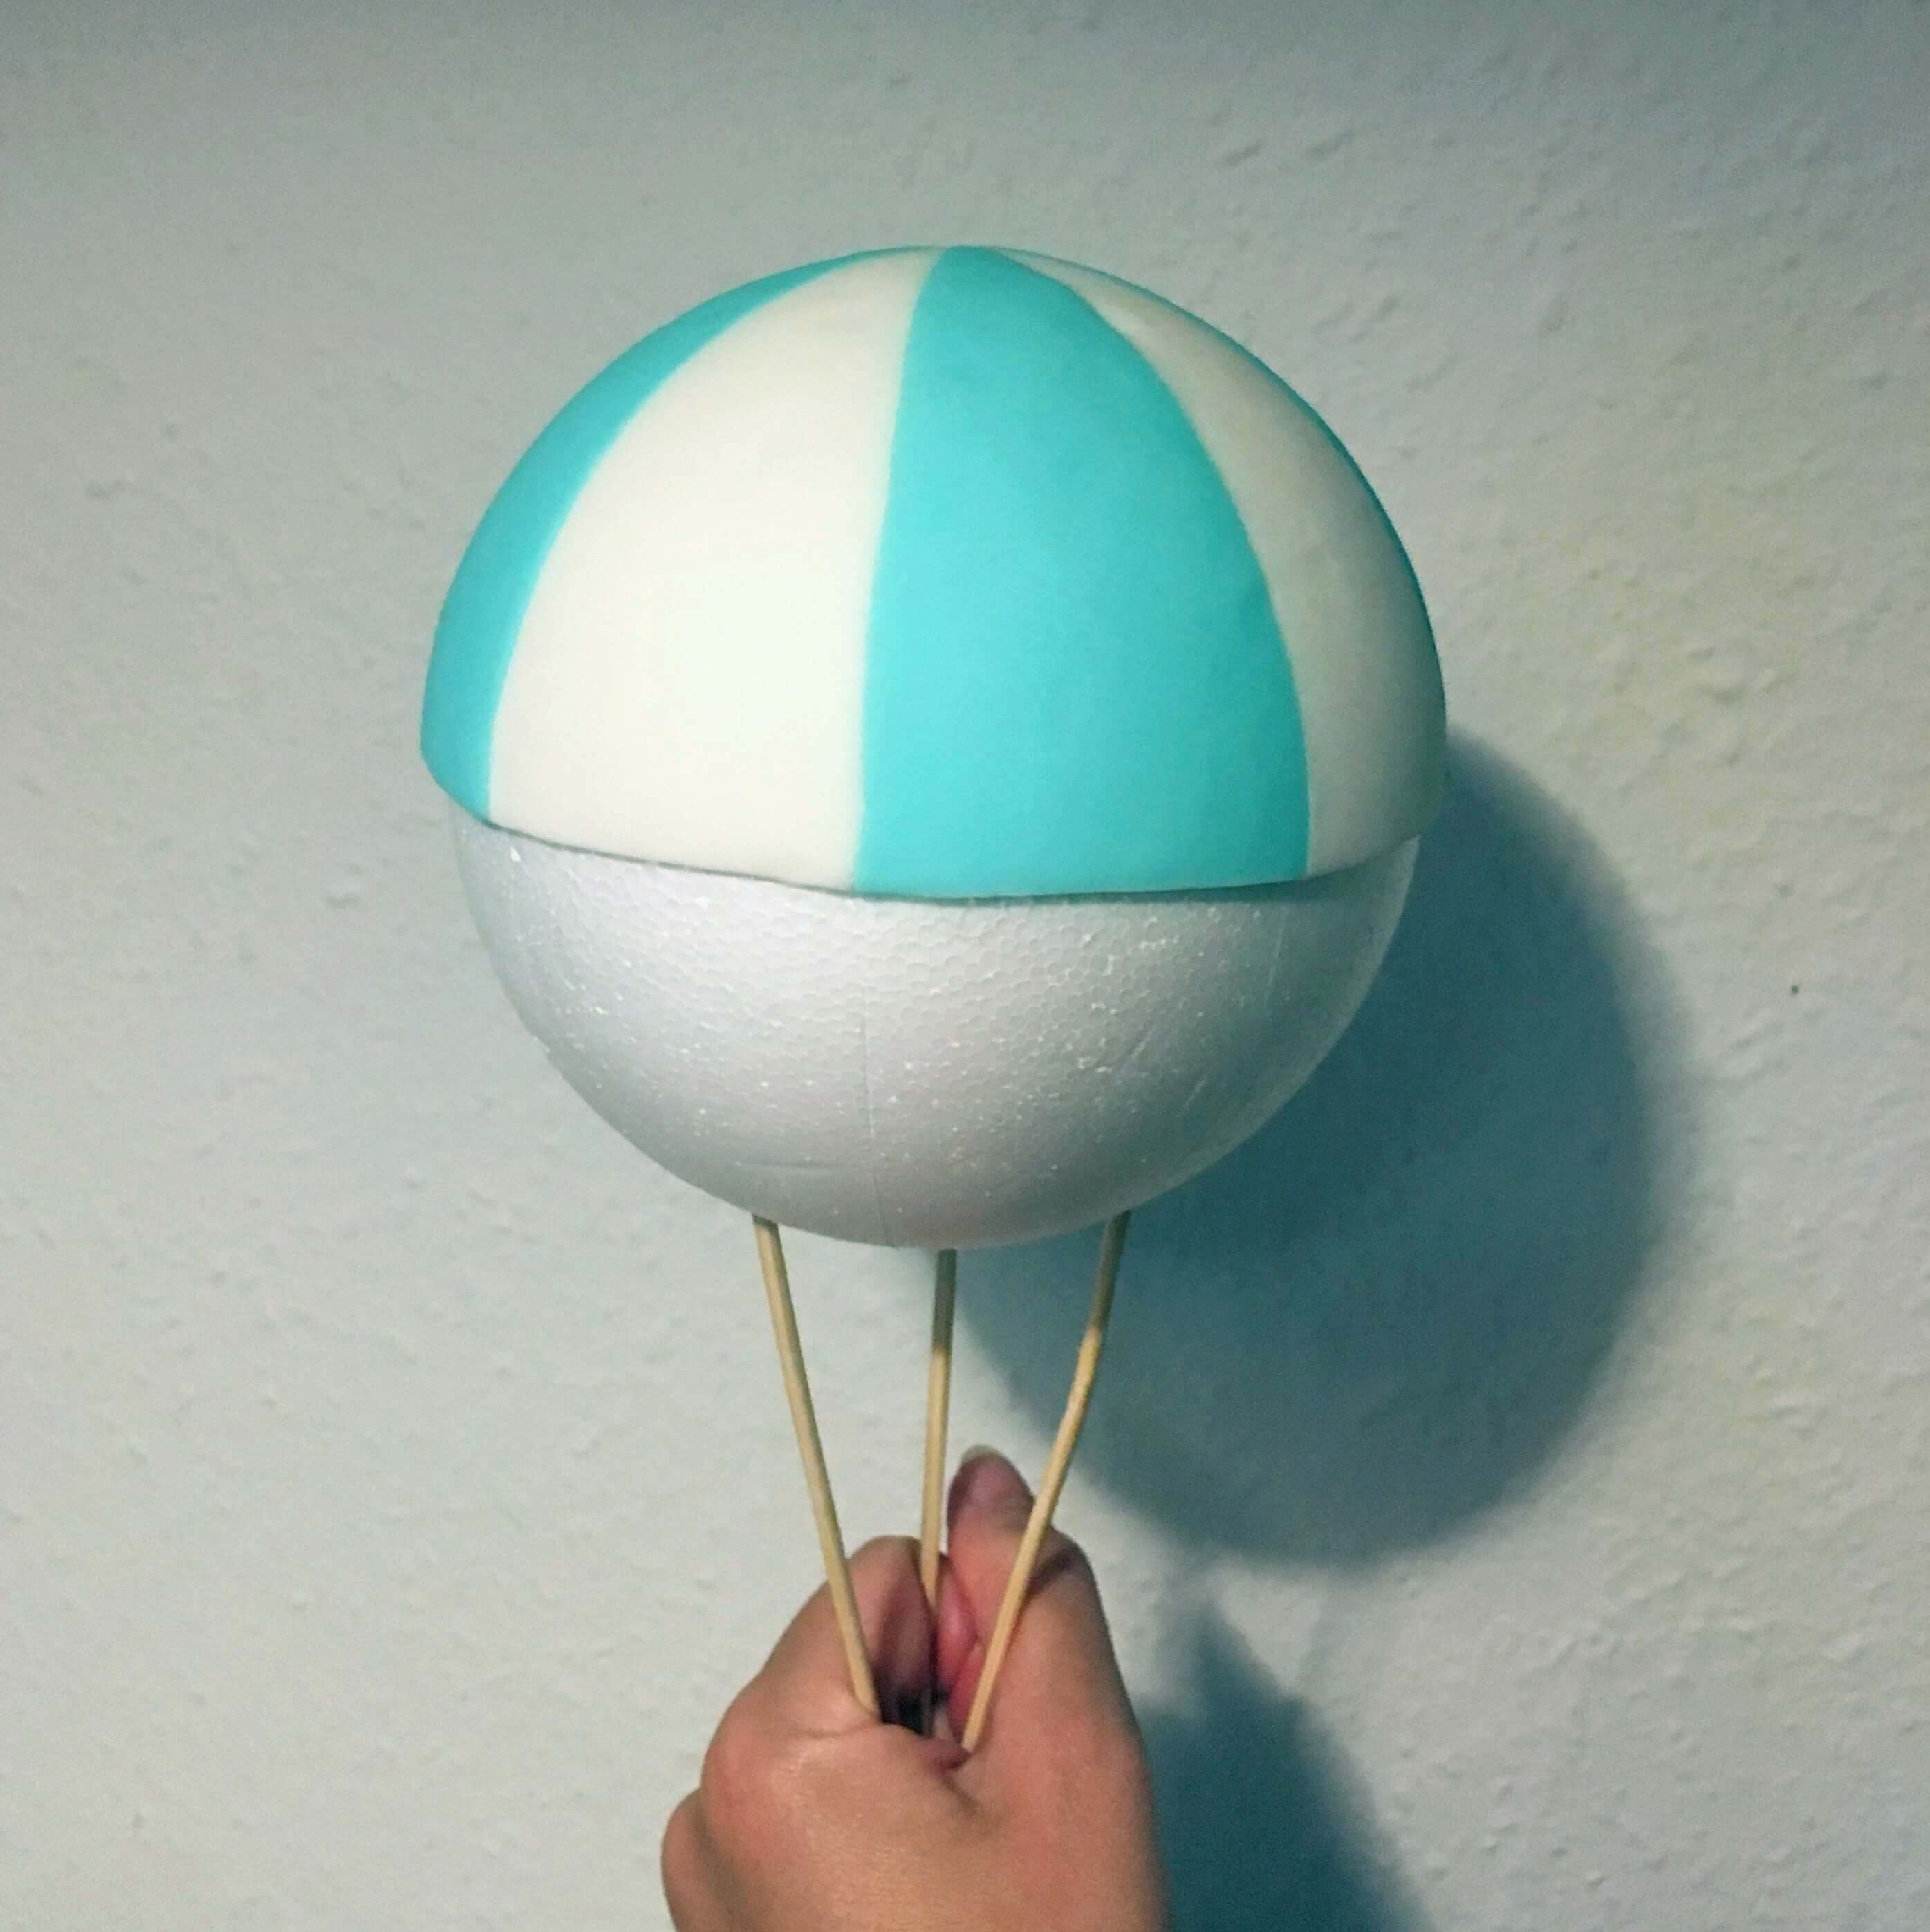 Luftballon step 1